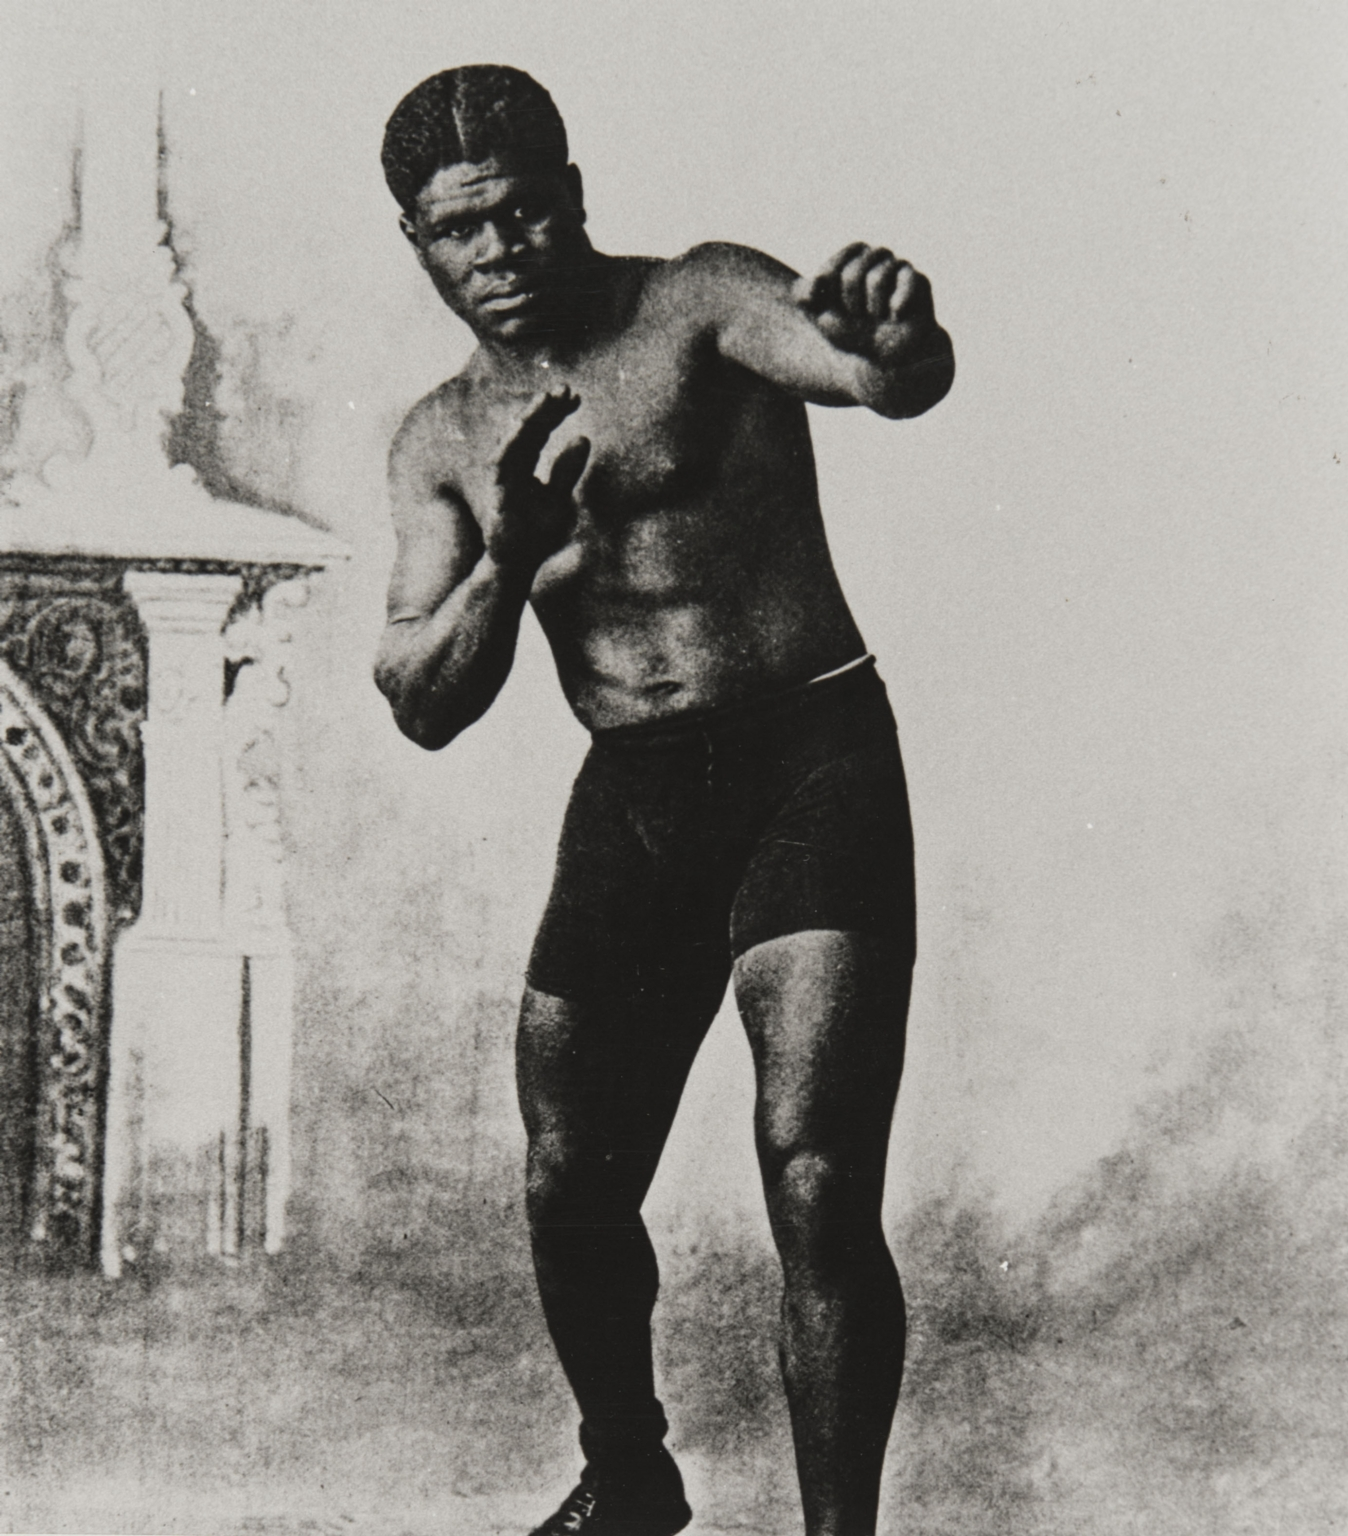 Sam McVey, Professional Boxer, born in Oxnard : May 17, 1884 ; McVey entered the professional ring at the age of eighteen and fought at least seven fights, six of them in Oxnard, before meeting Jack Johnson in his first officially recorded heavyweight bout on February 27, 1903. McVey fought professionally in the U.S., France, England, Australia, Cuba, Argentina, Chile and Panama until 1920 and died on December 23, 1921 at age 37.